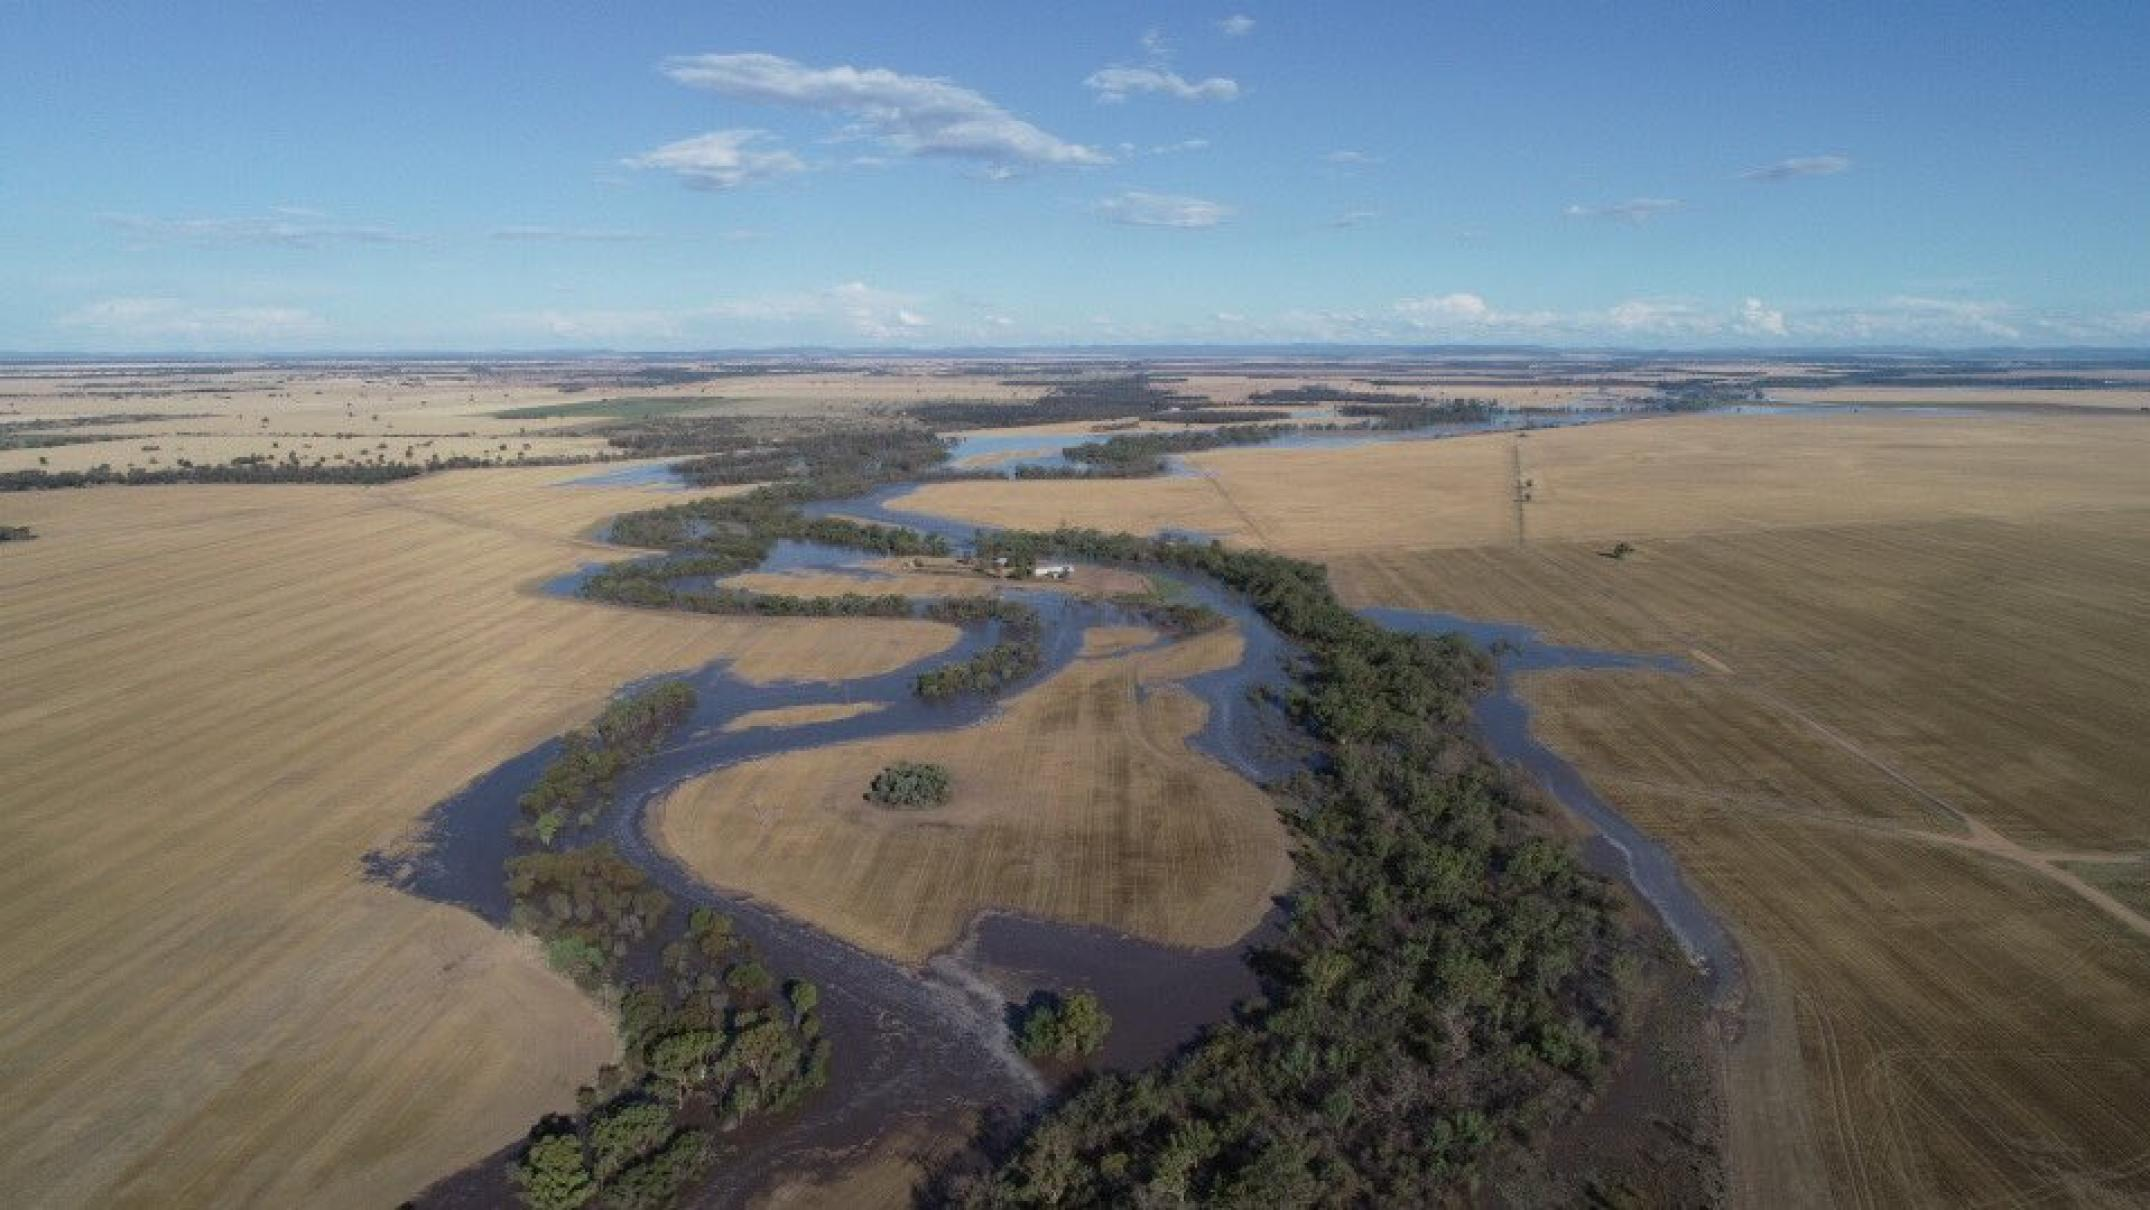 Floodwater coming, but irrigators can also merely no longer be in a position to harvest it legally